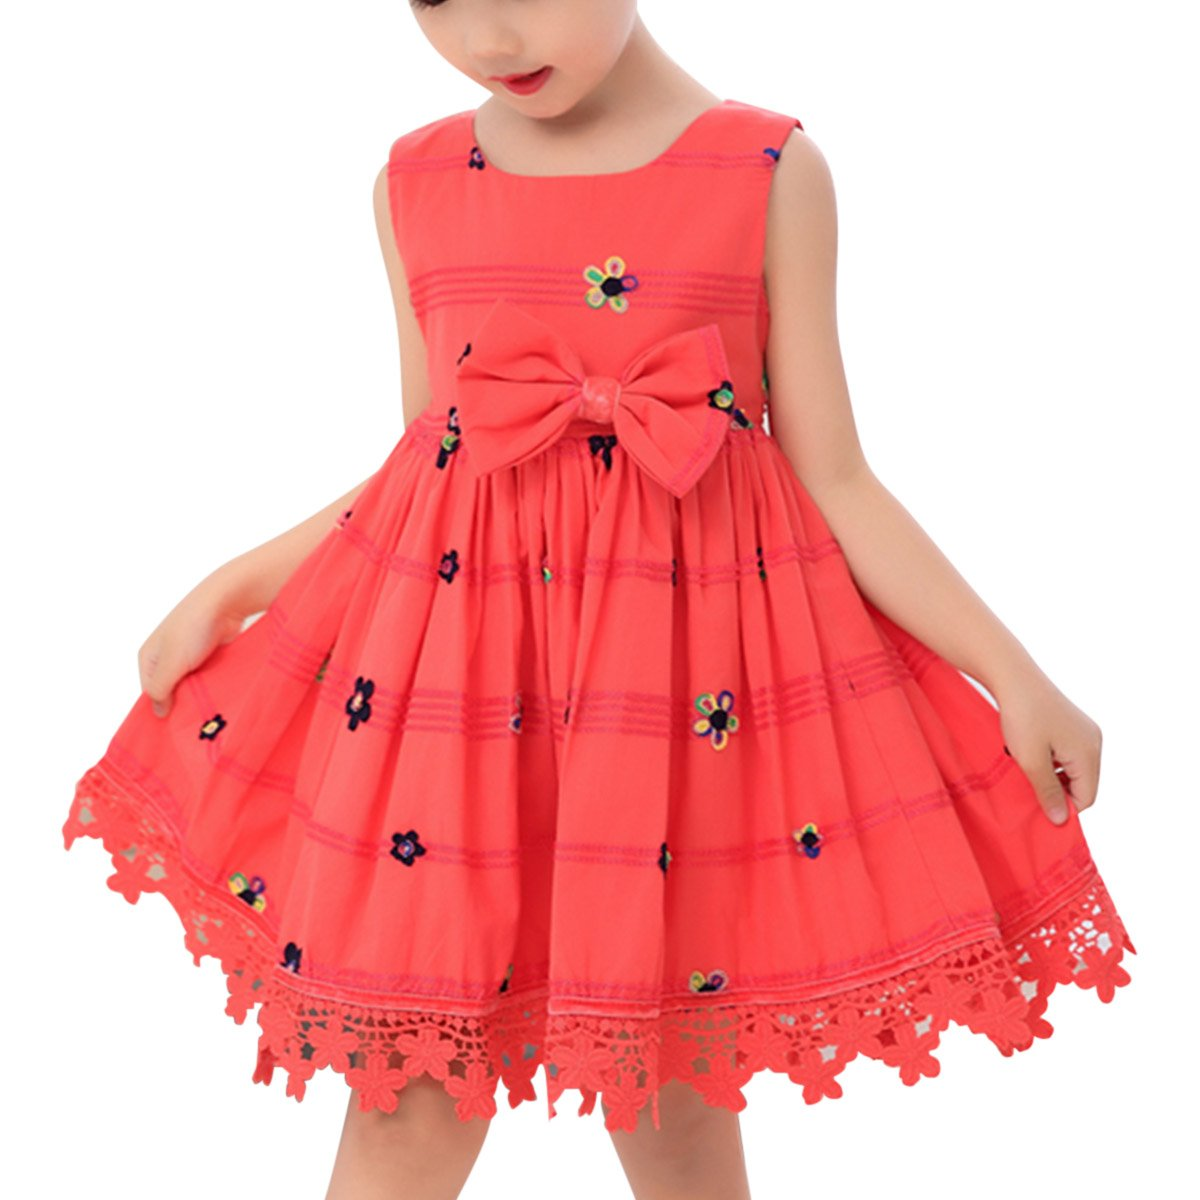 SUOSI BAG Girls' Sleeveless Dress Floral Swing Kid Party Dress Skirt with Flowers Embroidery Lace Sash and Bowknot (Bright red, 100cm for 3-4YS)